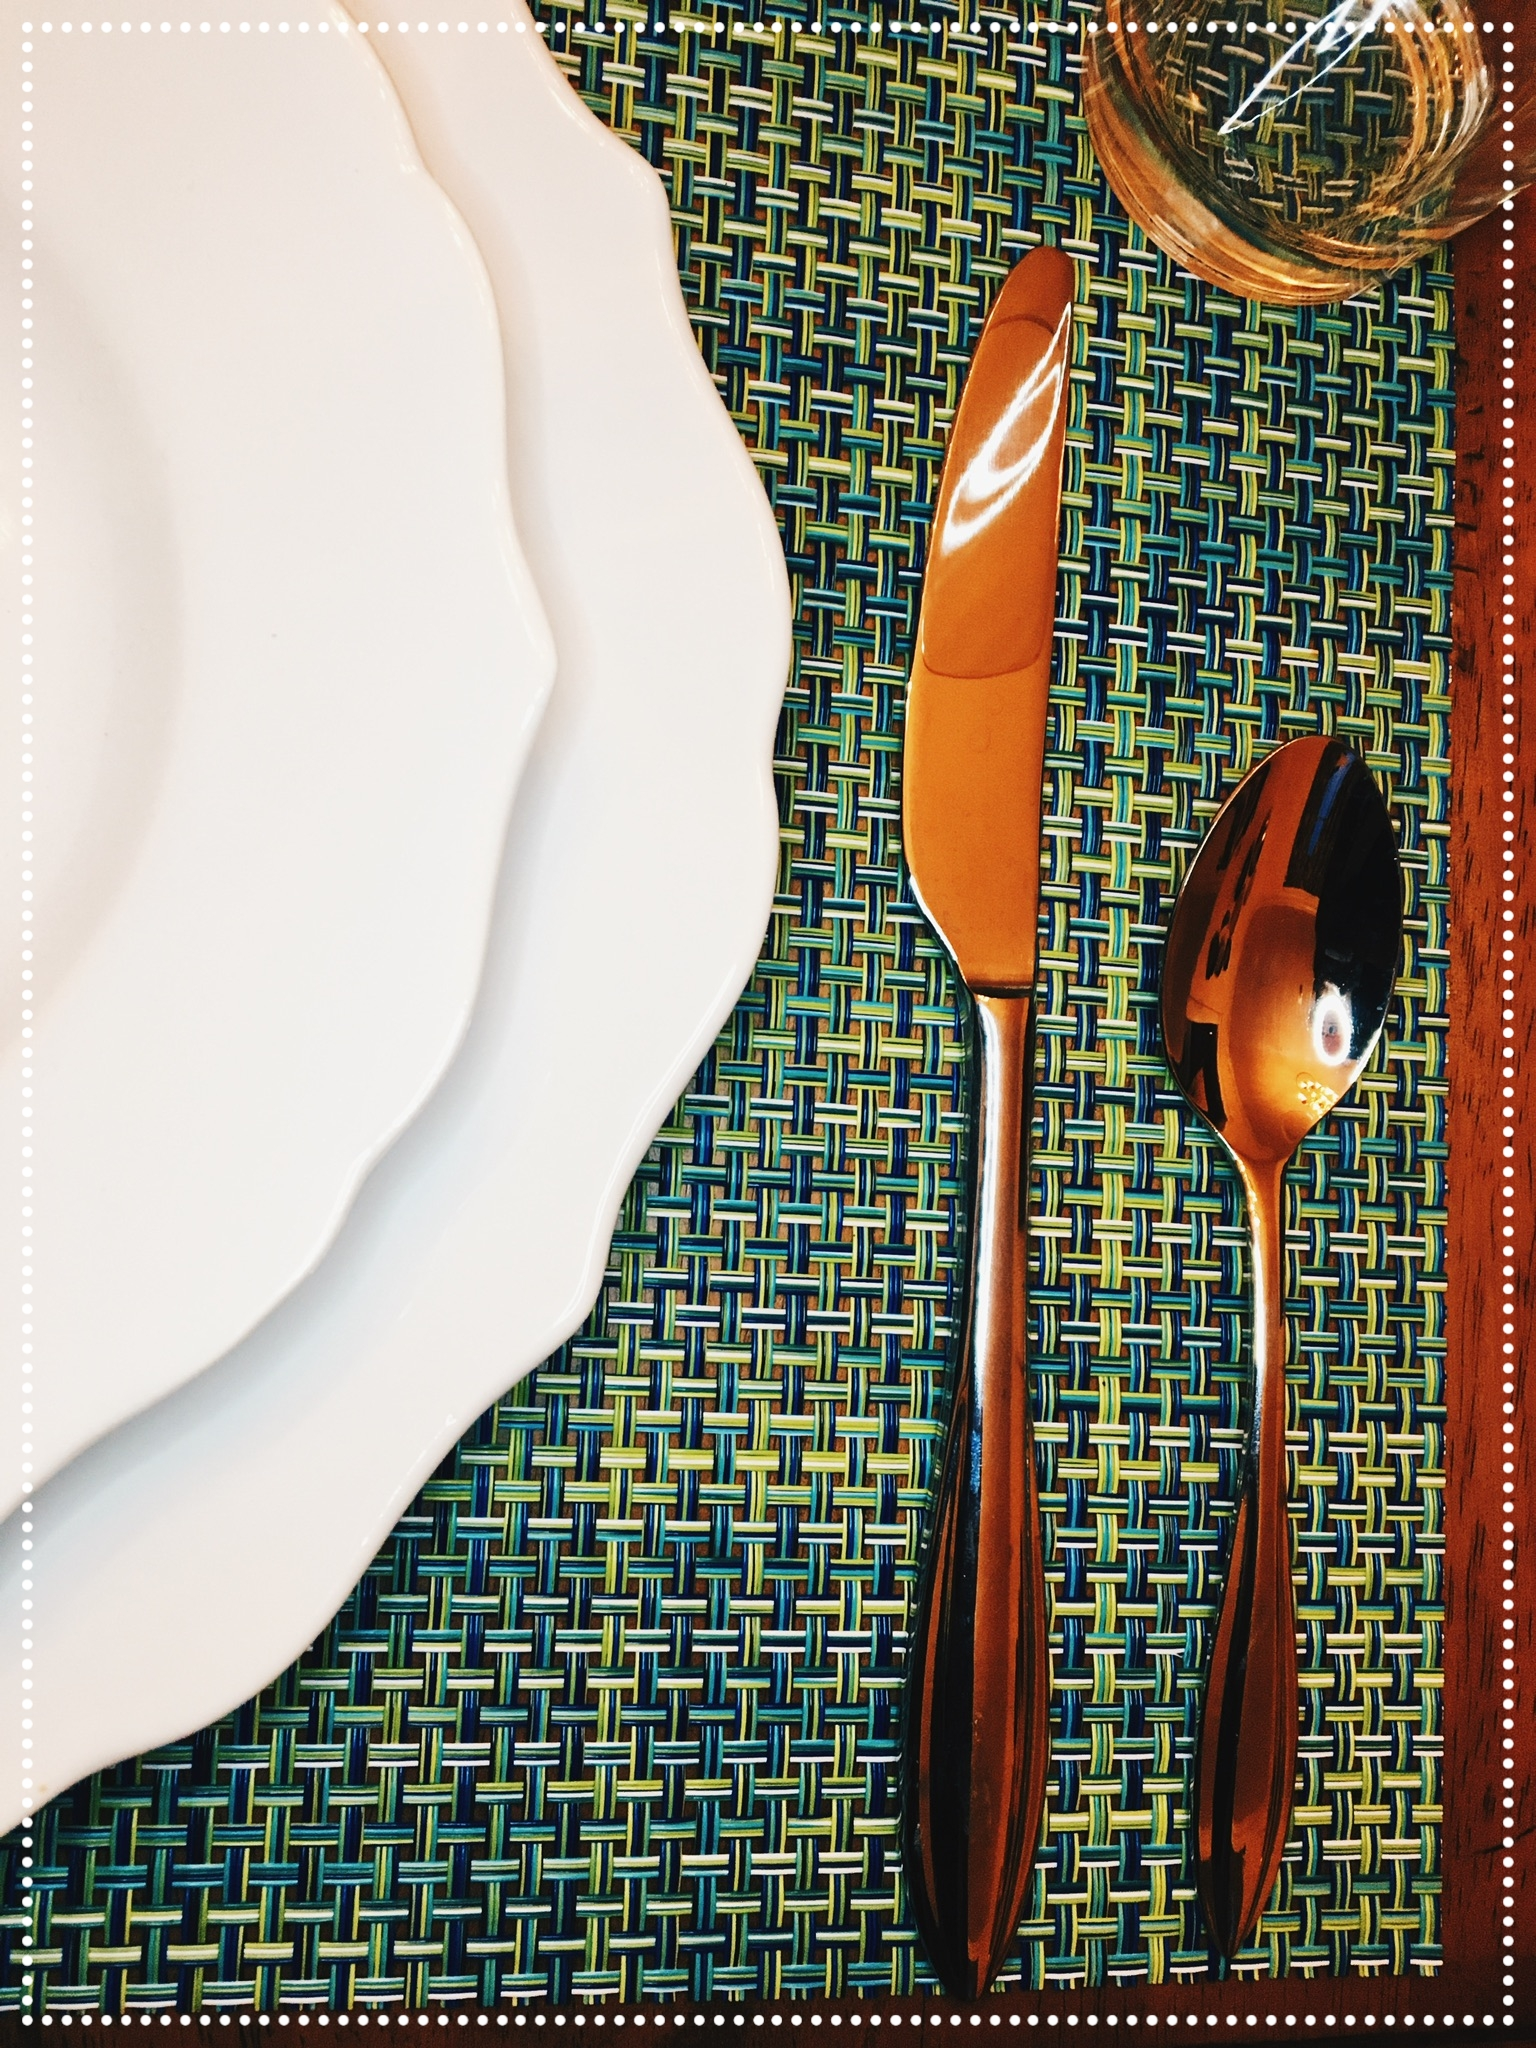 In a similar fashion, soup is also served before the main course, hence, the soup spoon is often placed on the far right side of the place mat. The dinner knife usually flanks the dinner plate on the right side of the place mat.